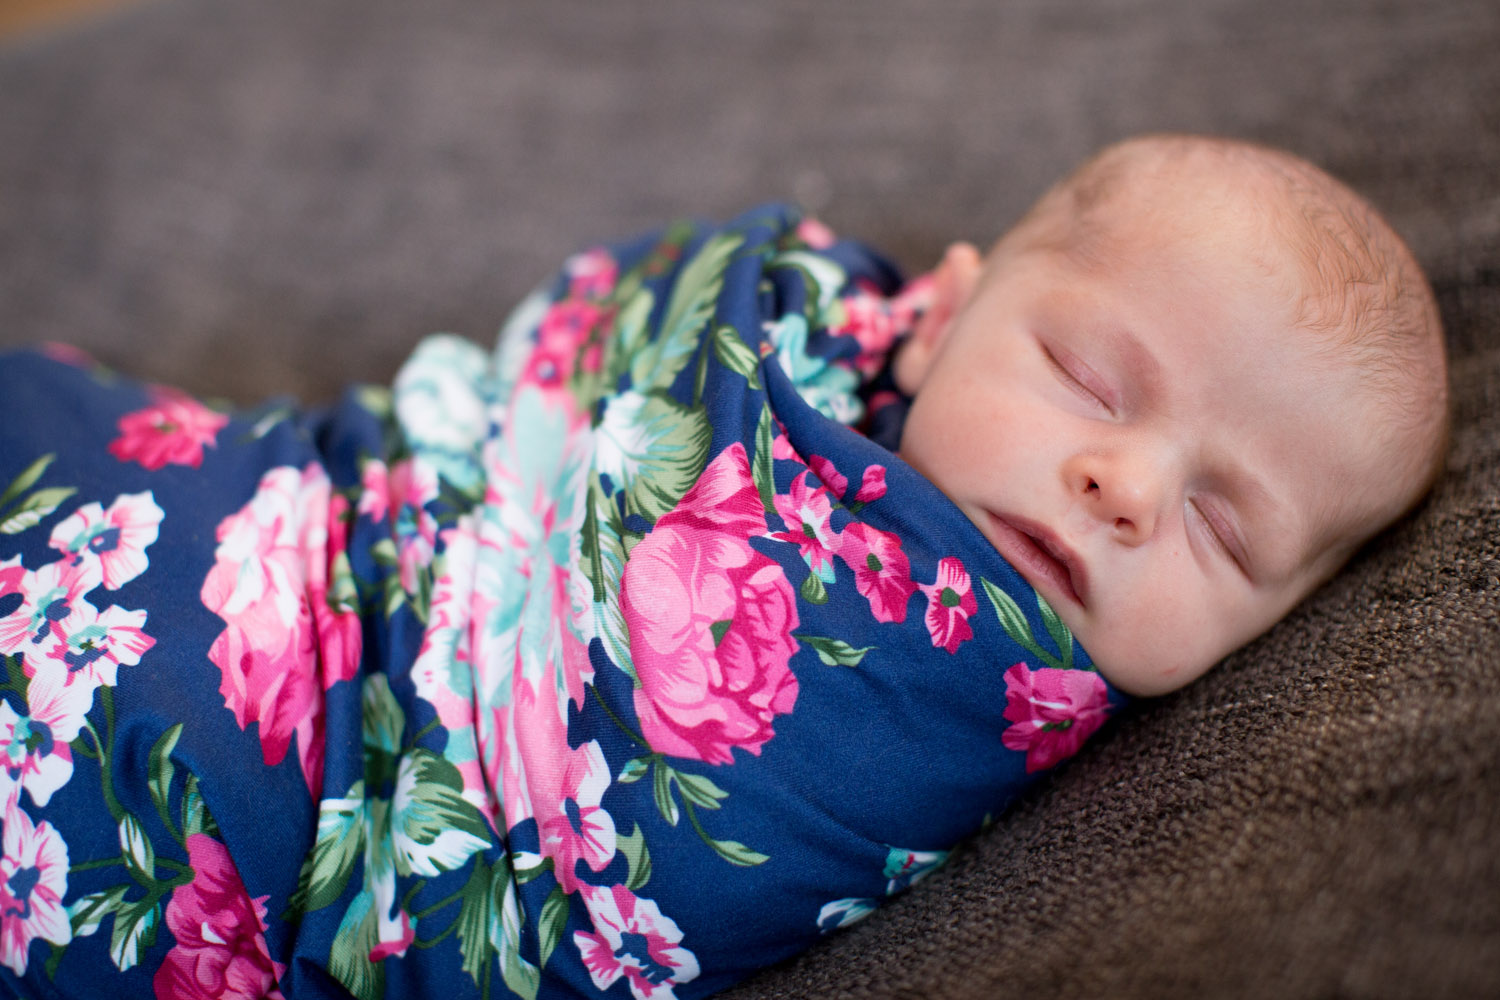 03-in-home-lifestyle-minnesota-newborn-photographer-navy-pink-floral-wrap-mahonen-photography.jpg